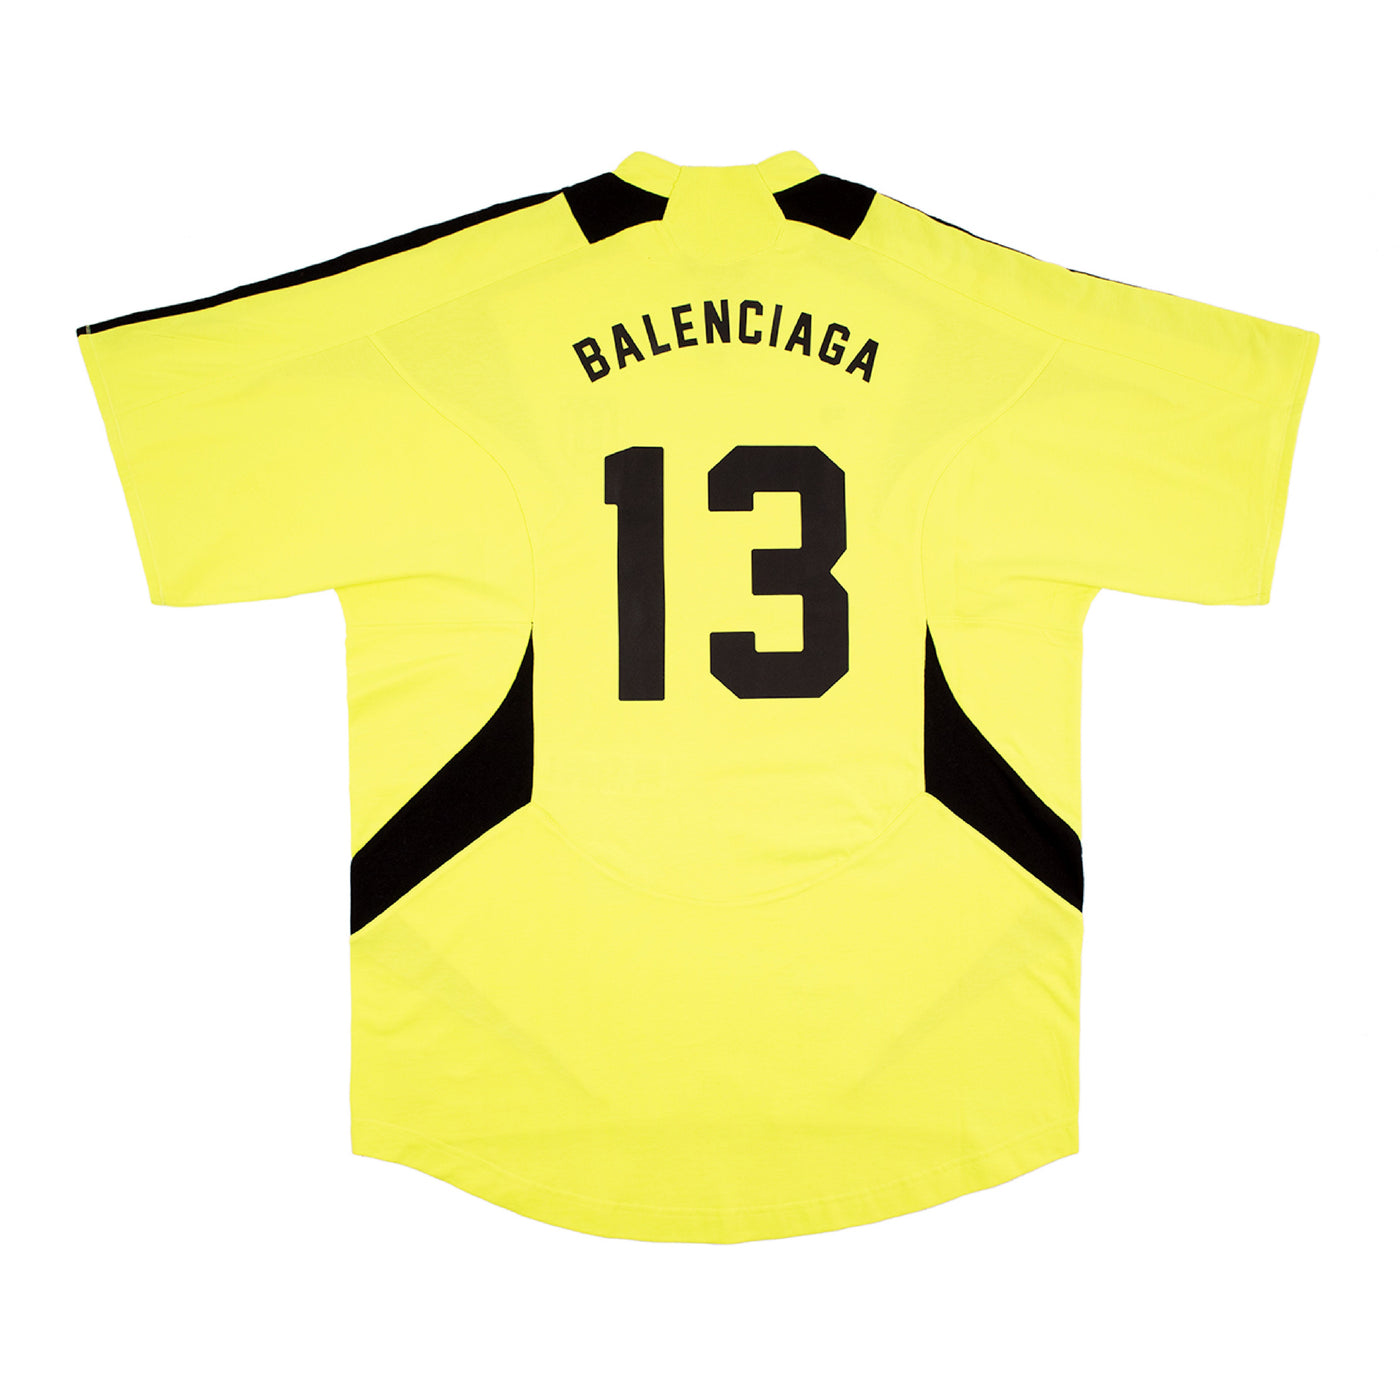 Load image into Gallery viewer, BALENCIAGA SOCCER T-SHIRT YELLOW